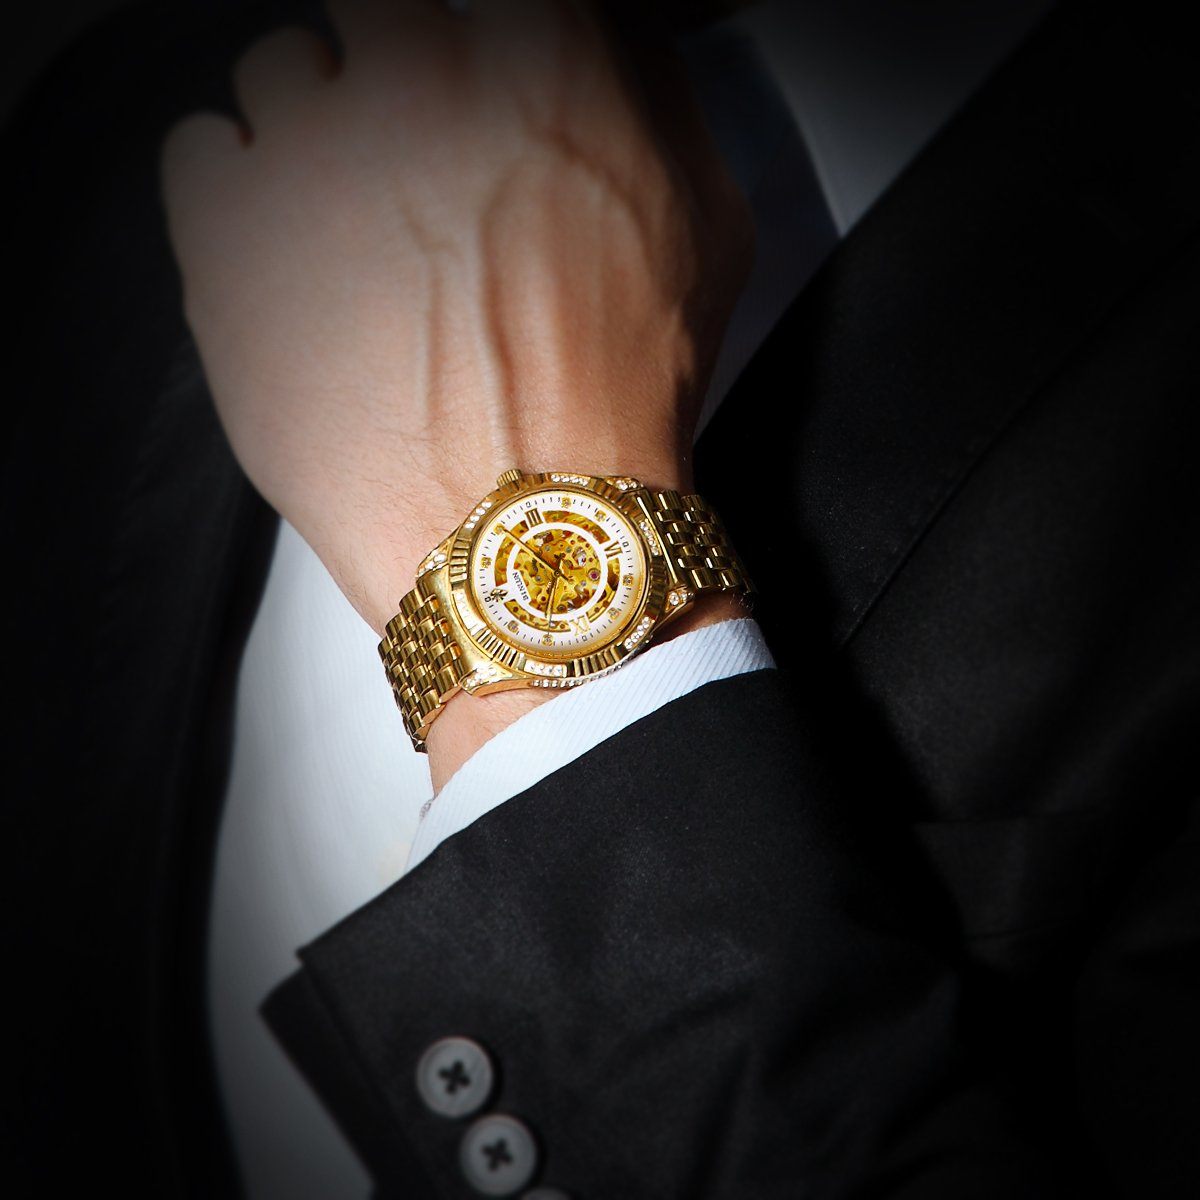 BINLUN Men's Gold Automatic Luxury Skeleton Watches Gift to Father by BINLUN (Image #7)